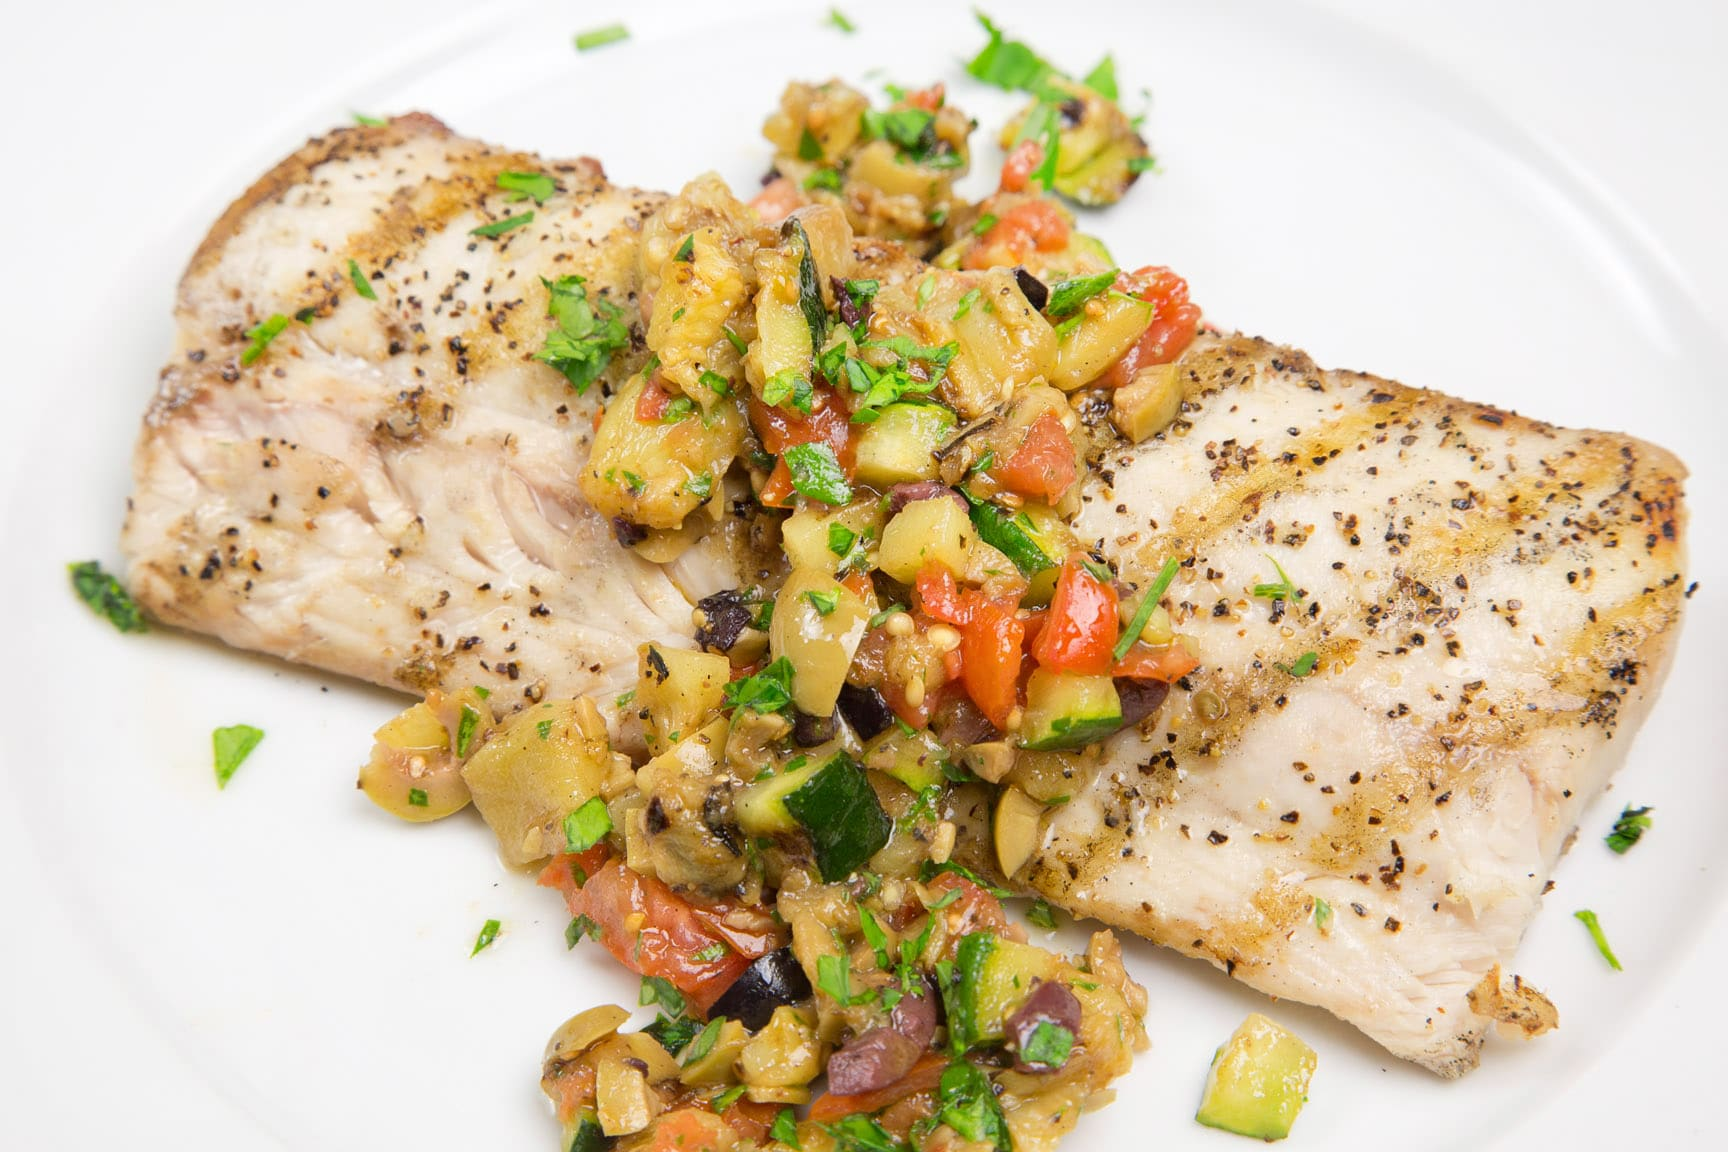 grilled mahi-mahi with caponata on a white plate